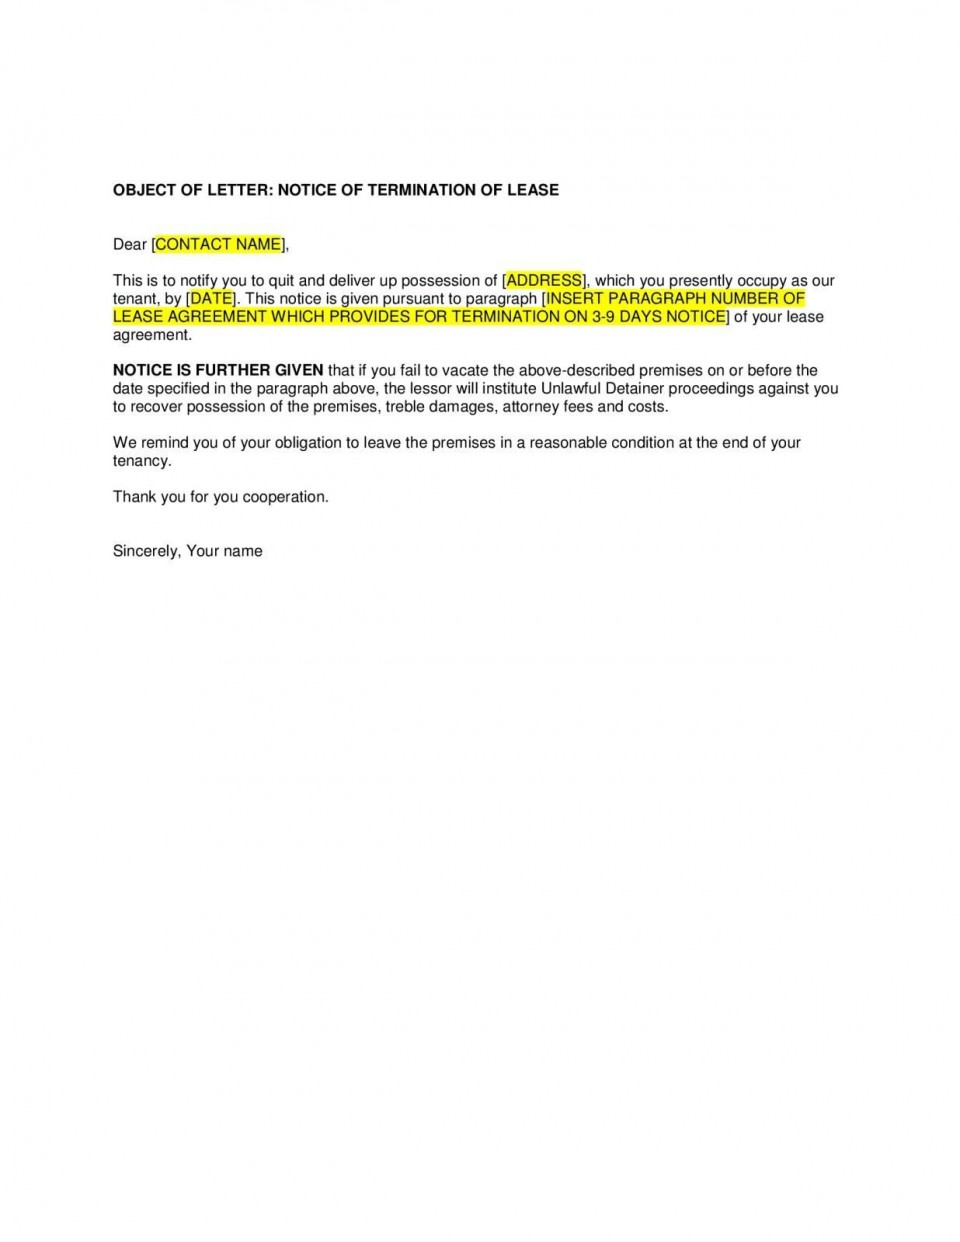 004 Unique Template For Terminating A Lease Agreement Inspiration  Rental Sample Letter960